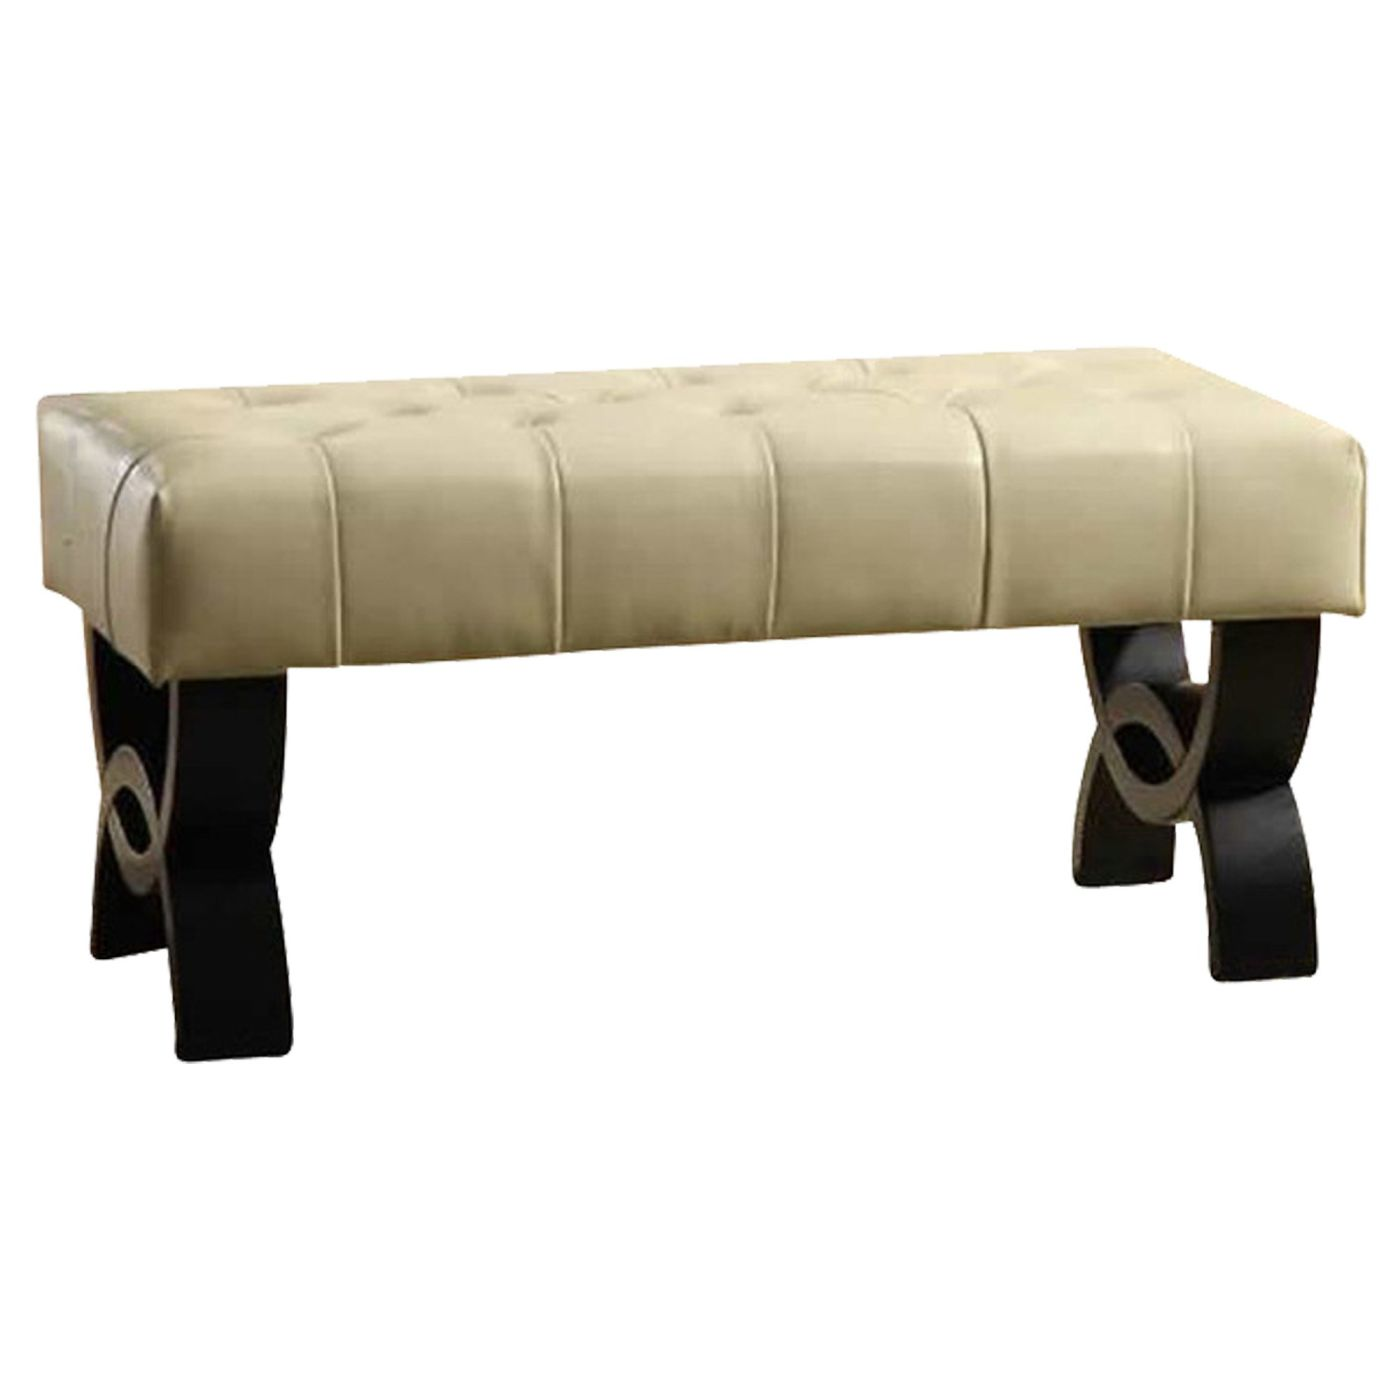 Wondrous Buy Armen Living Lc5012Bebccr36 Central Park 36 Tufted Cream Bonded Leather Ottoman At Contemporary Furniture Warehouse Ncnpc Chair Design For Home Ncnpcorg